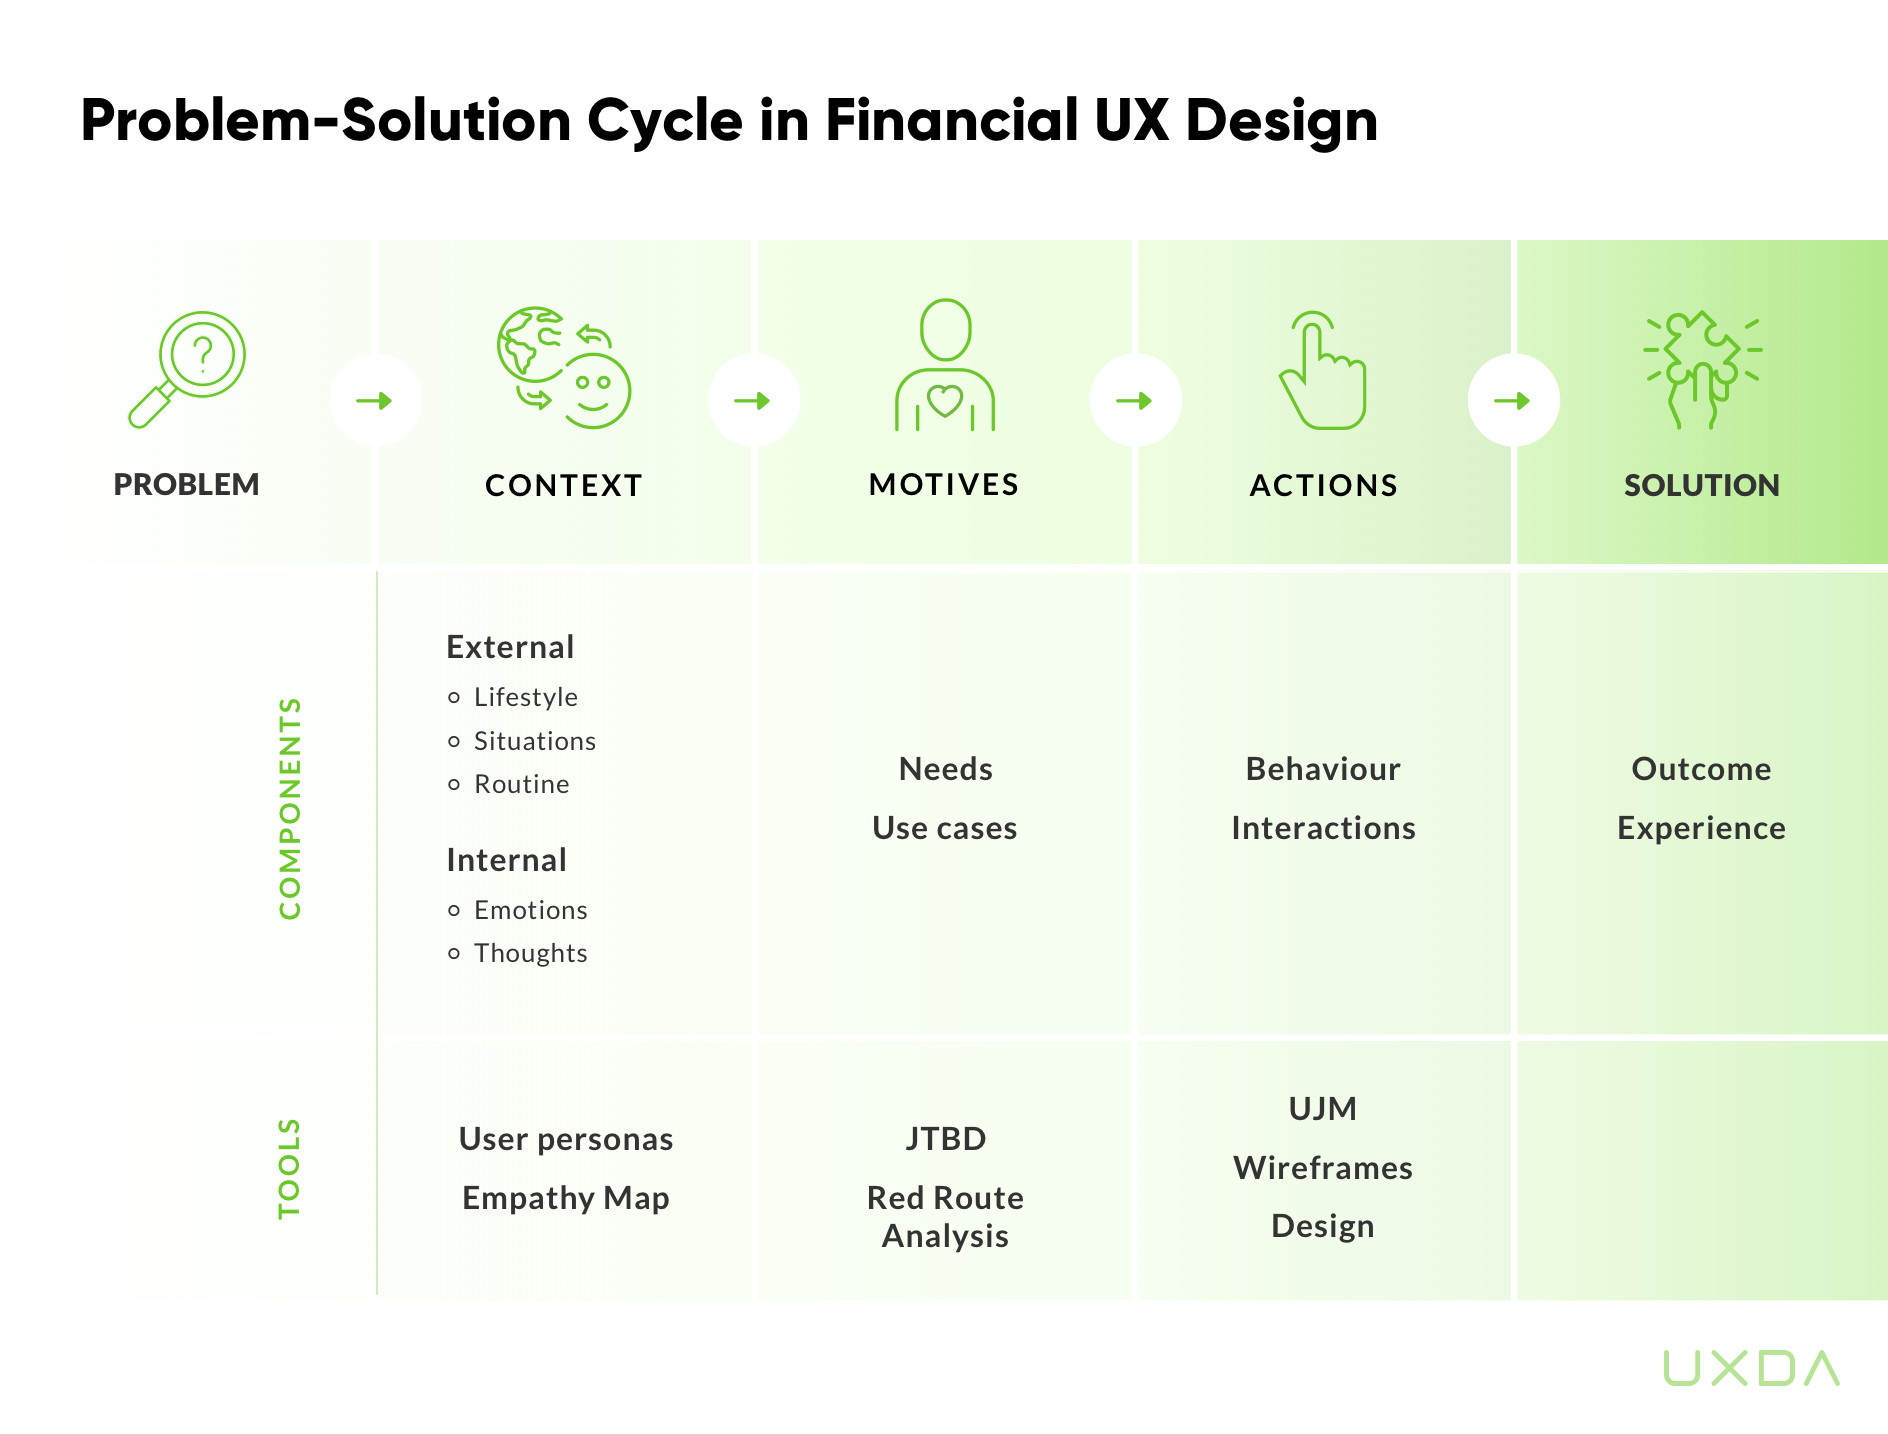 7-financial-ux-design-problem-solution-cycle-by-uxda.jpg